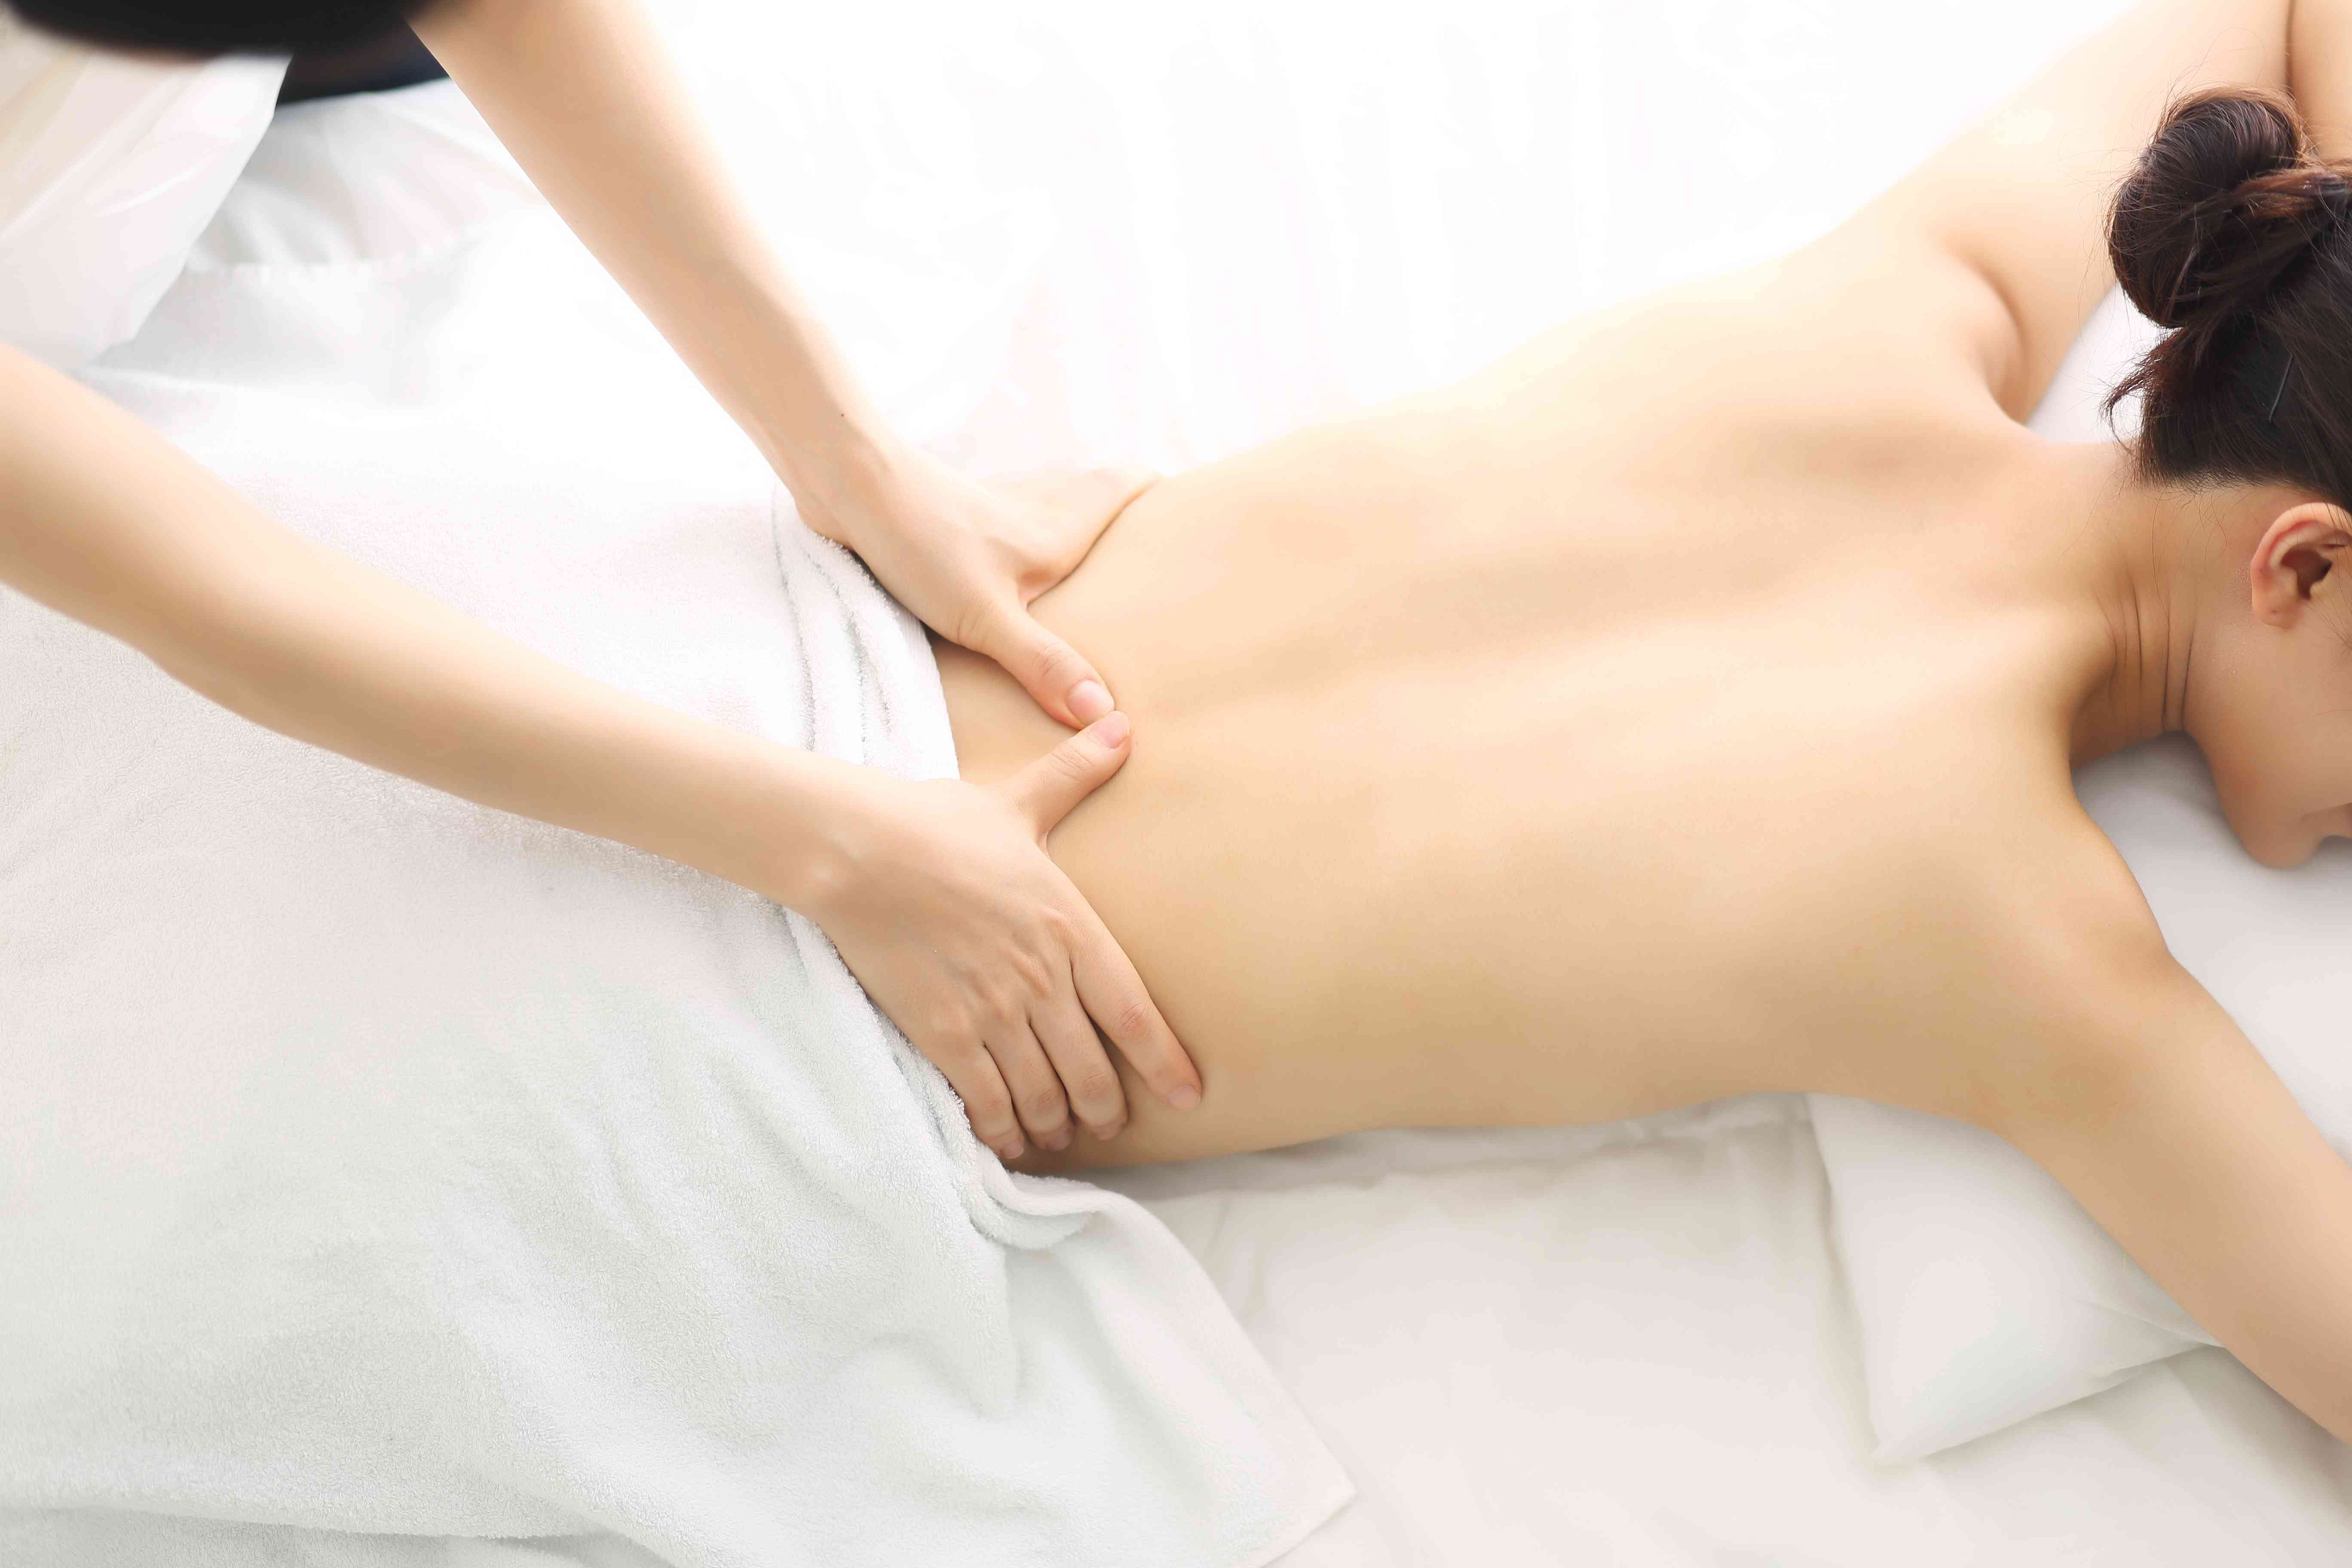 Massage Therapy for People With Cancer